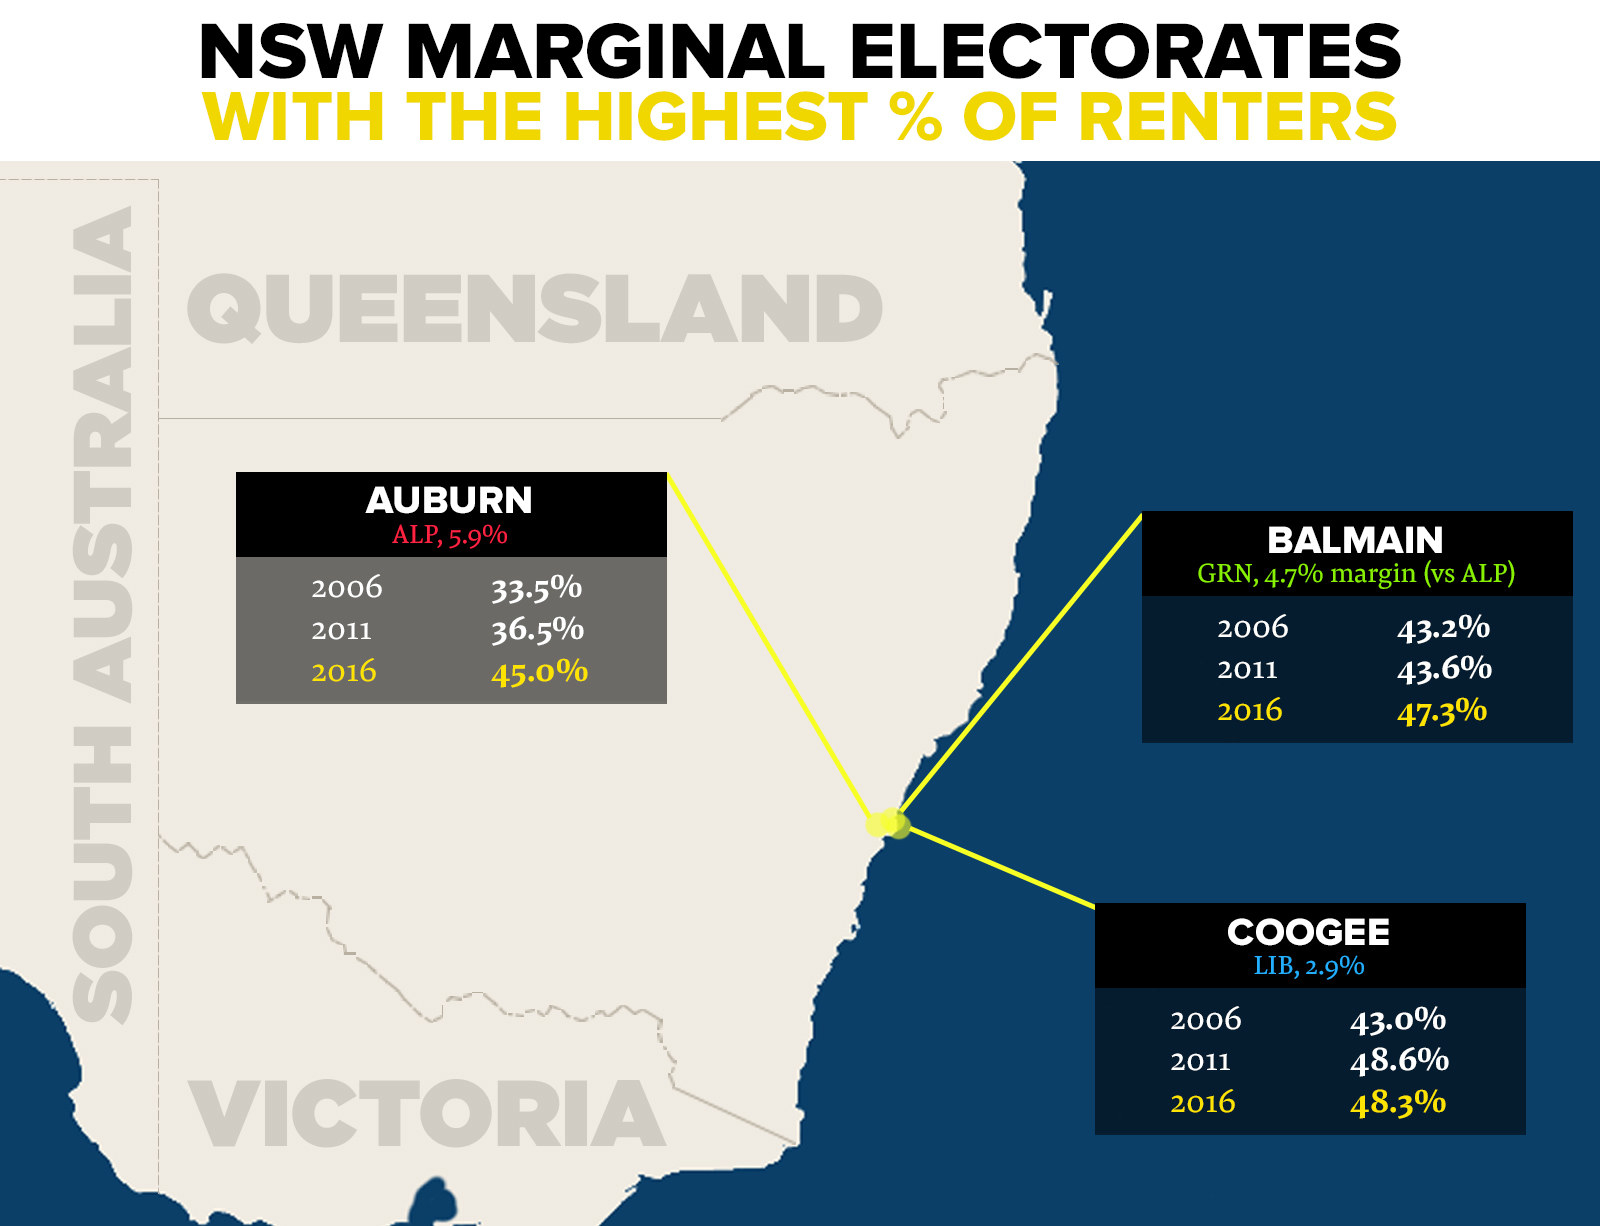 NSW's next election is just under three months away. The proportion of householders that rented in 2016 was just above the national average, at 31.8%. Renters are approaching a majority in Coogee (48.3%), Balmain (47.3%) and Auburn (45.0%). In 12 of the 17 marginal electorates, the proportion increased between 2011 and 2016. In all but three, the proportion of rental dwellings increased between the 2006 and 2016 censuses. That increase in renting is particularly steep in some electorates – like Gosford (jumping from 23.5% to 33.4%), Granville (35.3% to 43.9%) and Auburn (33.5% to 45.0%).